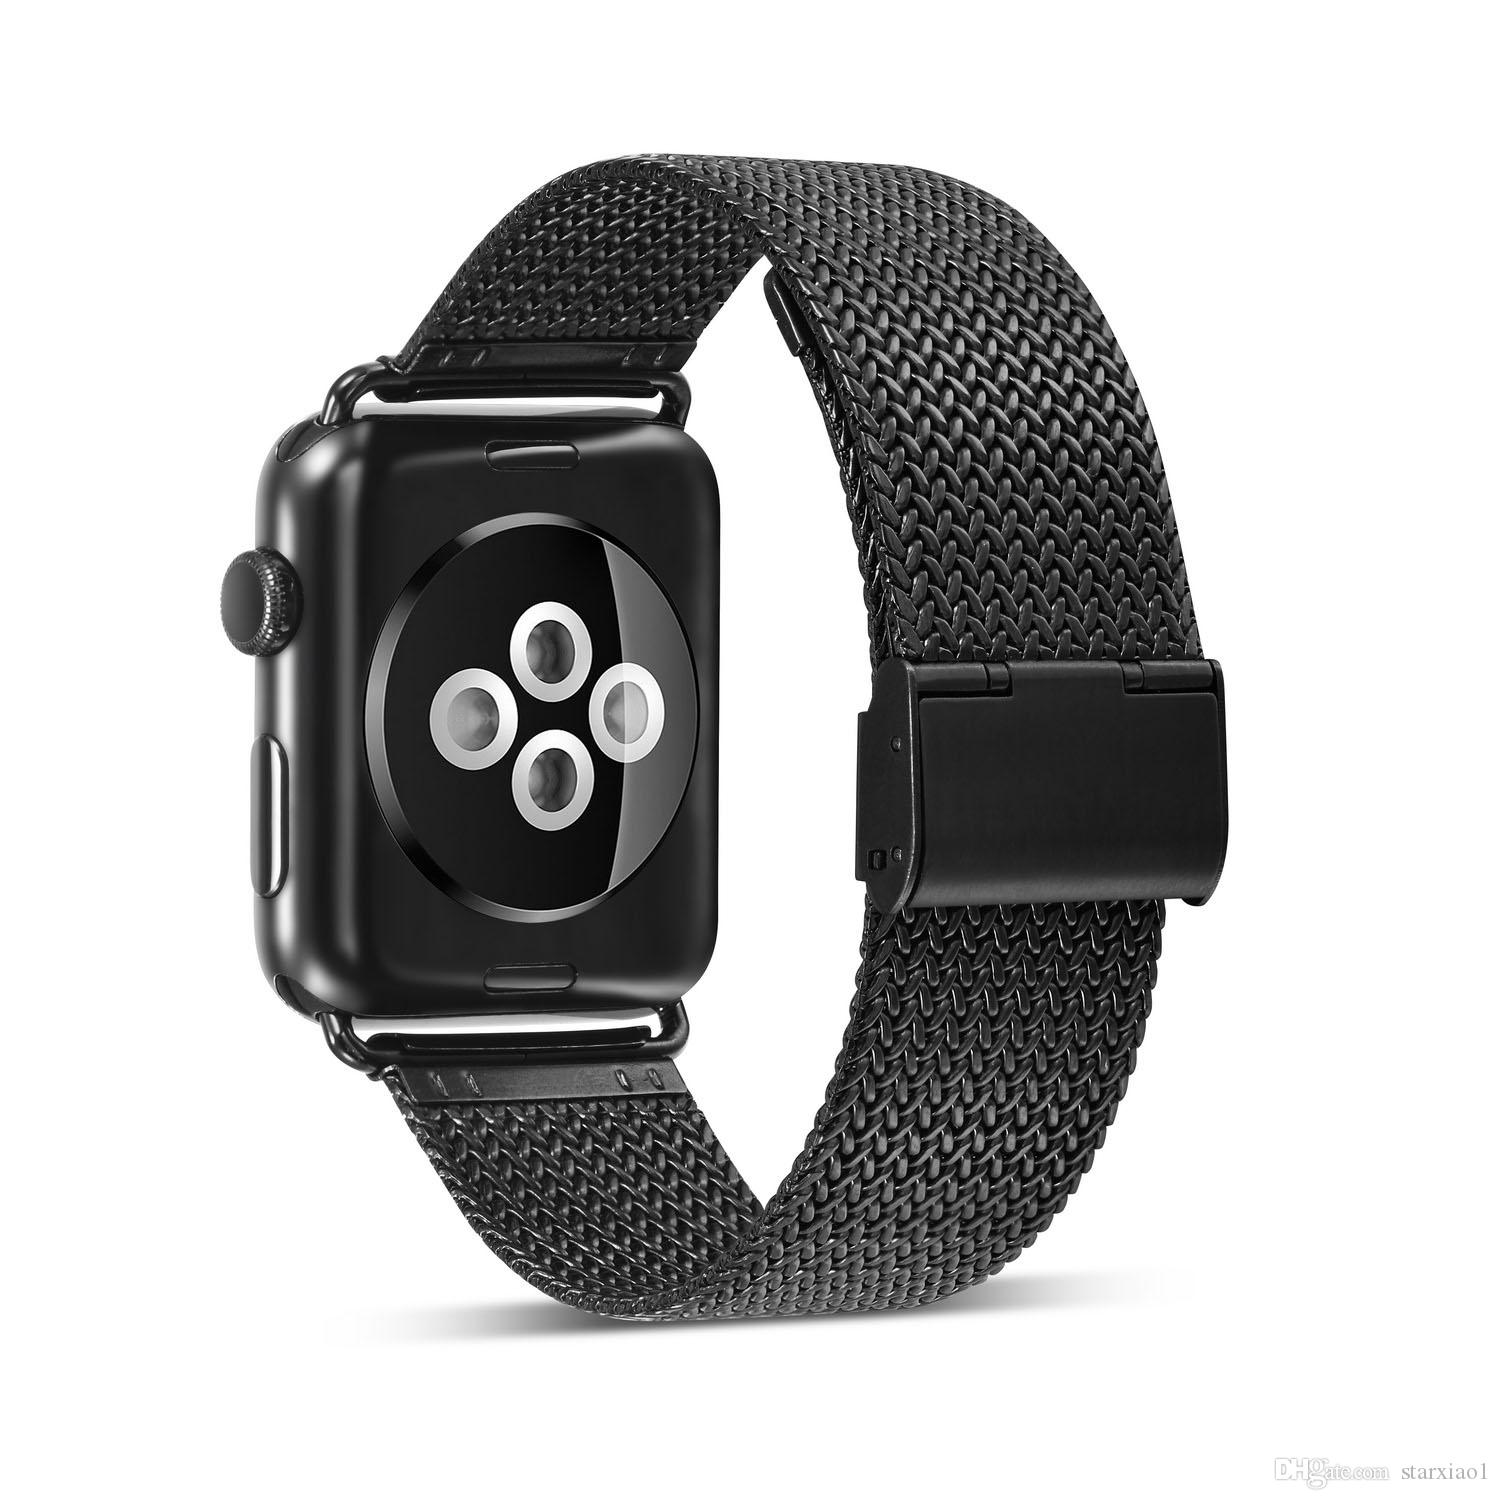 Double Buckle Milanese Loop Stainless Steel Watchband for Apple Watch Series 4/3/2/1 42mm 38 mm Strap For iwatch Band 40/44mm